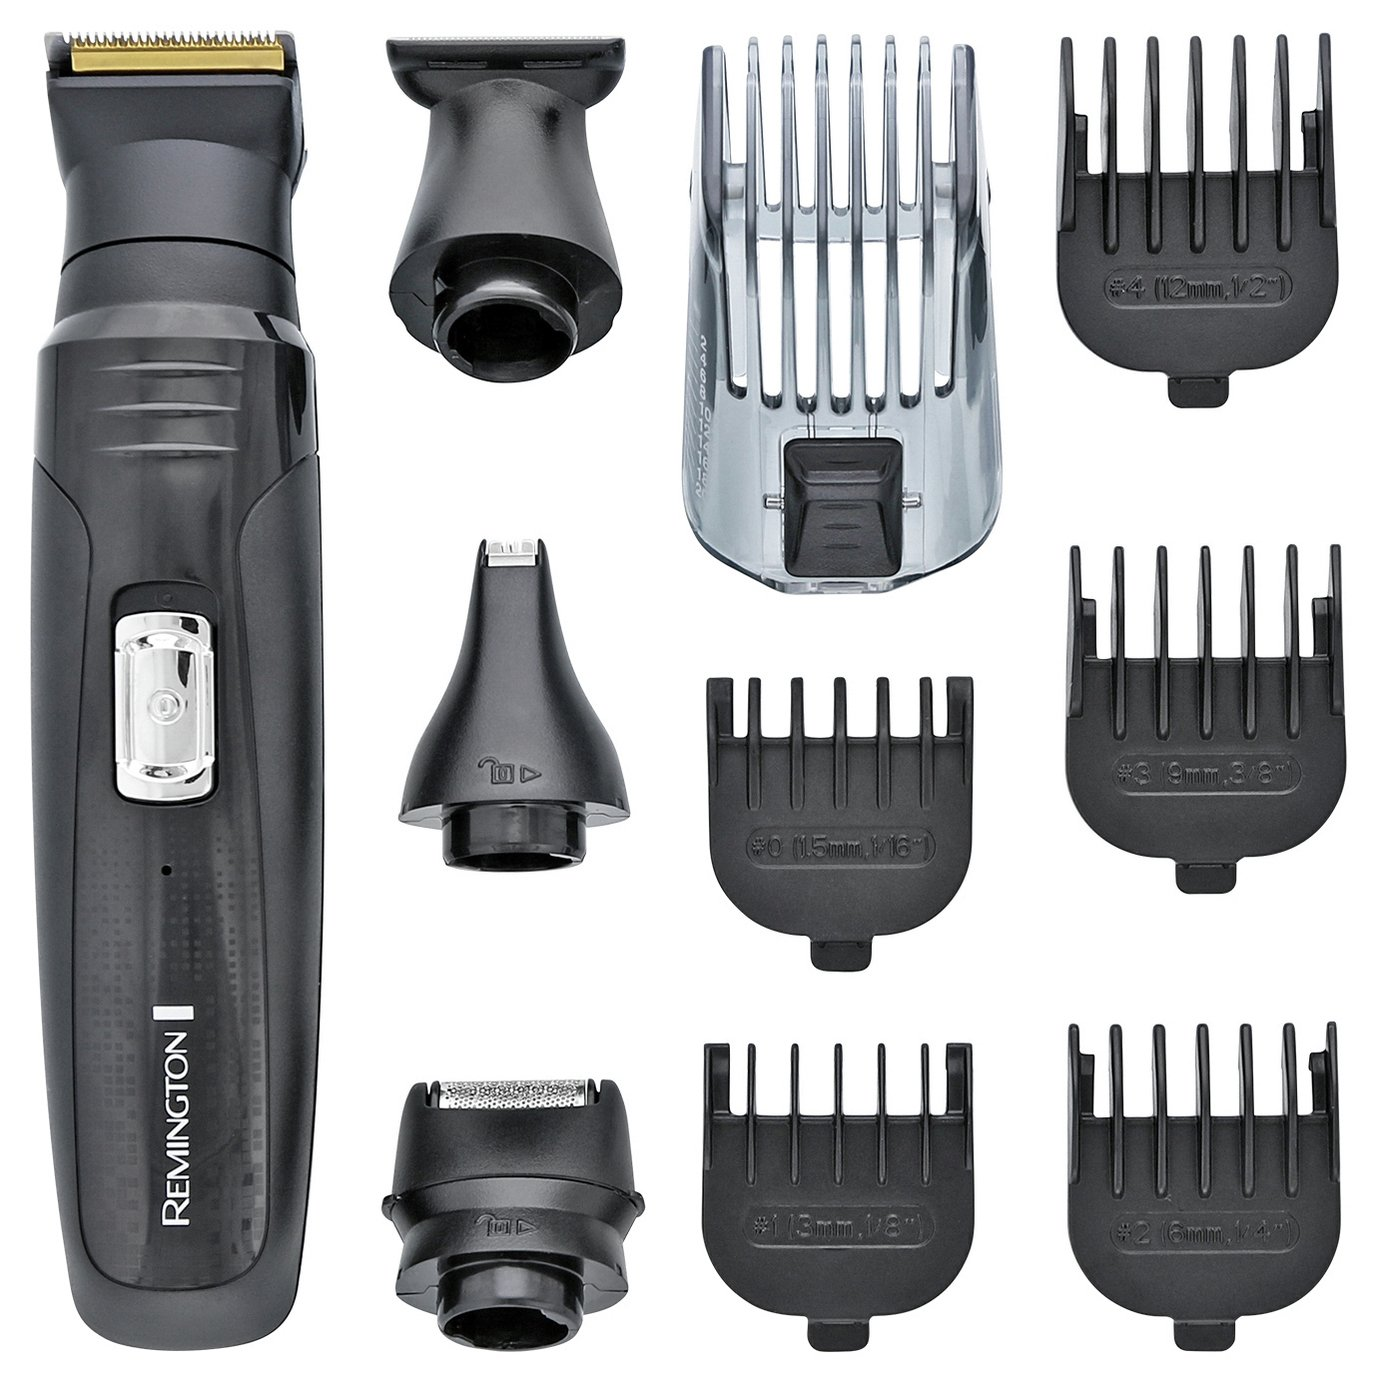 Remington 10 in 1 Body Groomer and Hair Clipper Kit PG6130